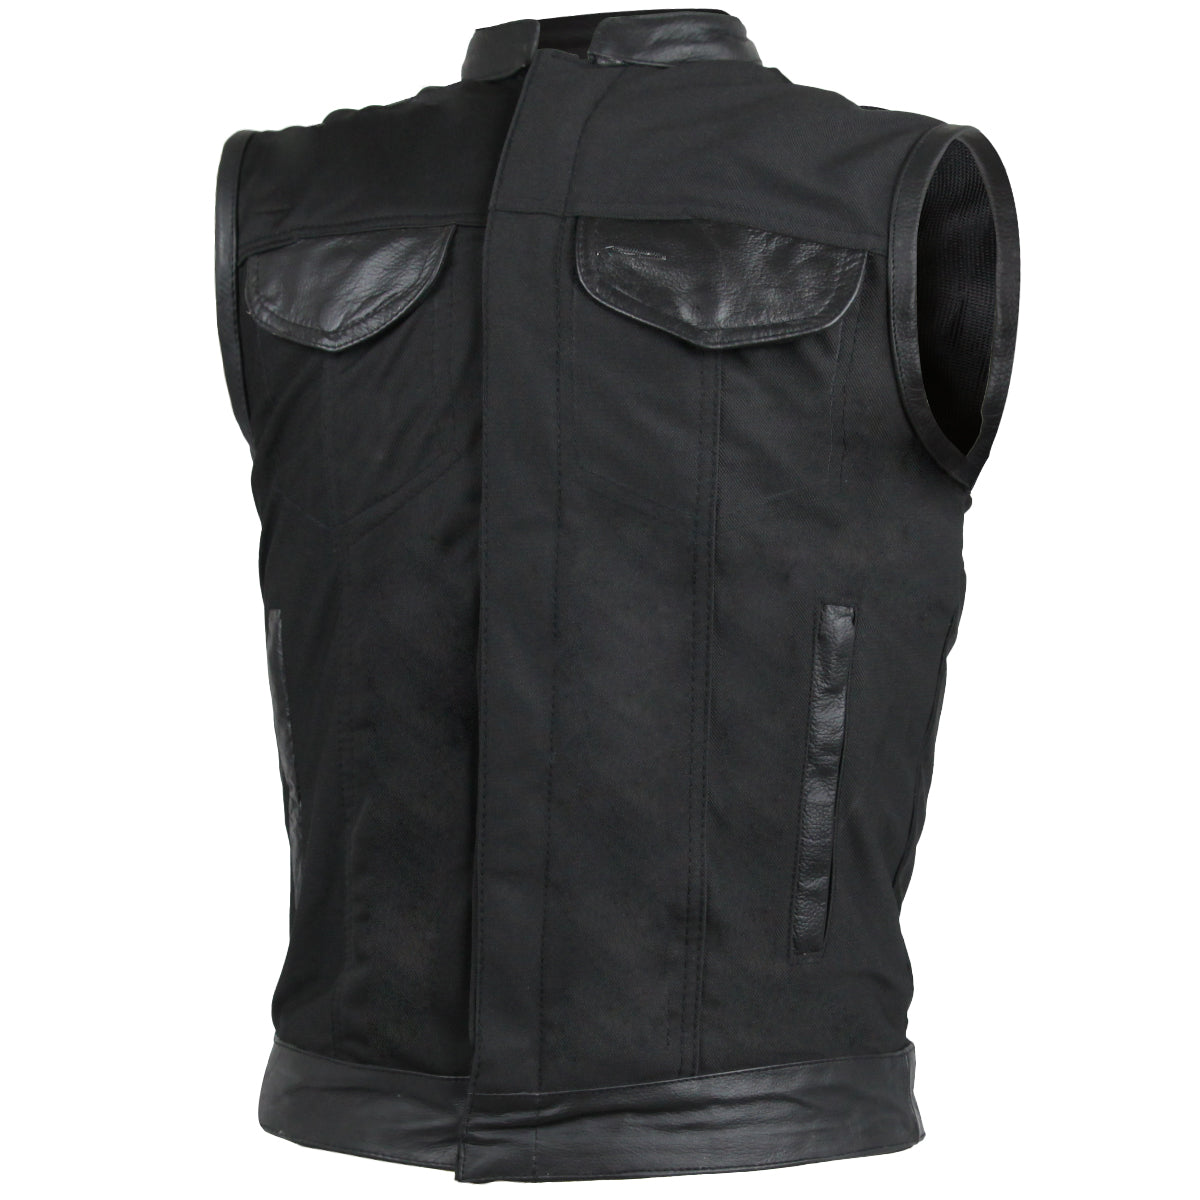 Heavy Duty Textile Club Vest with Leather Accents and Snaps And Zipper Closure